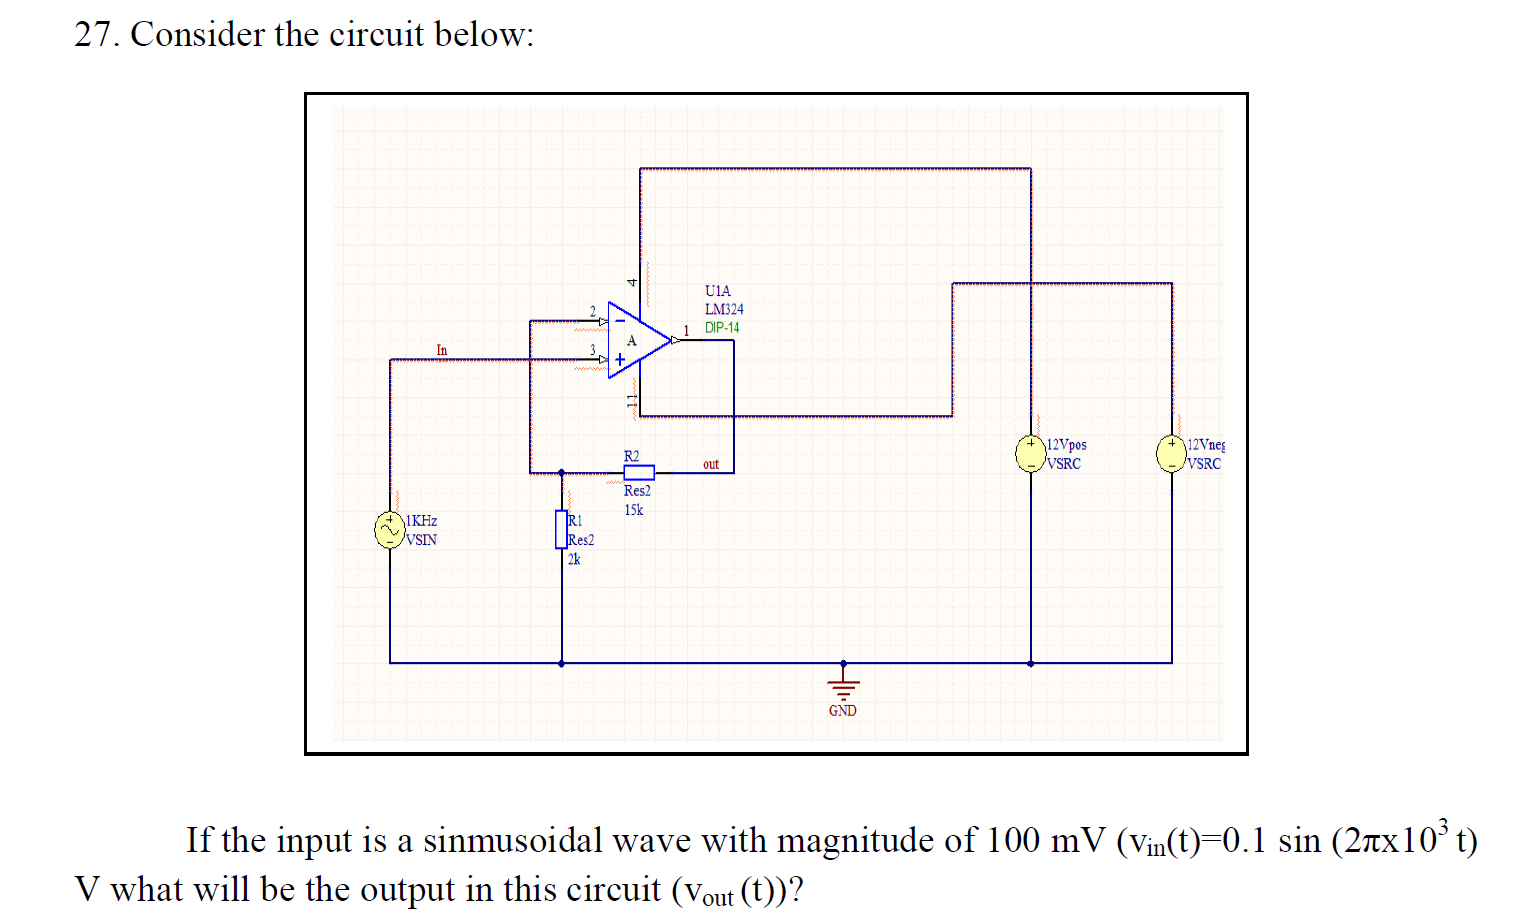 Consider the circuit below: If the input is a sin